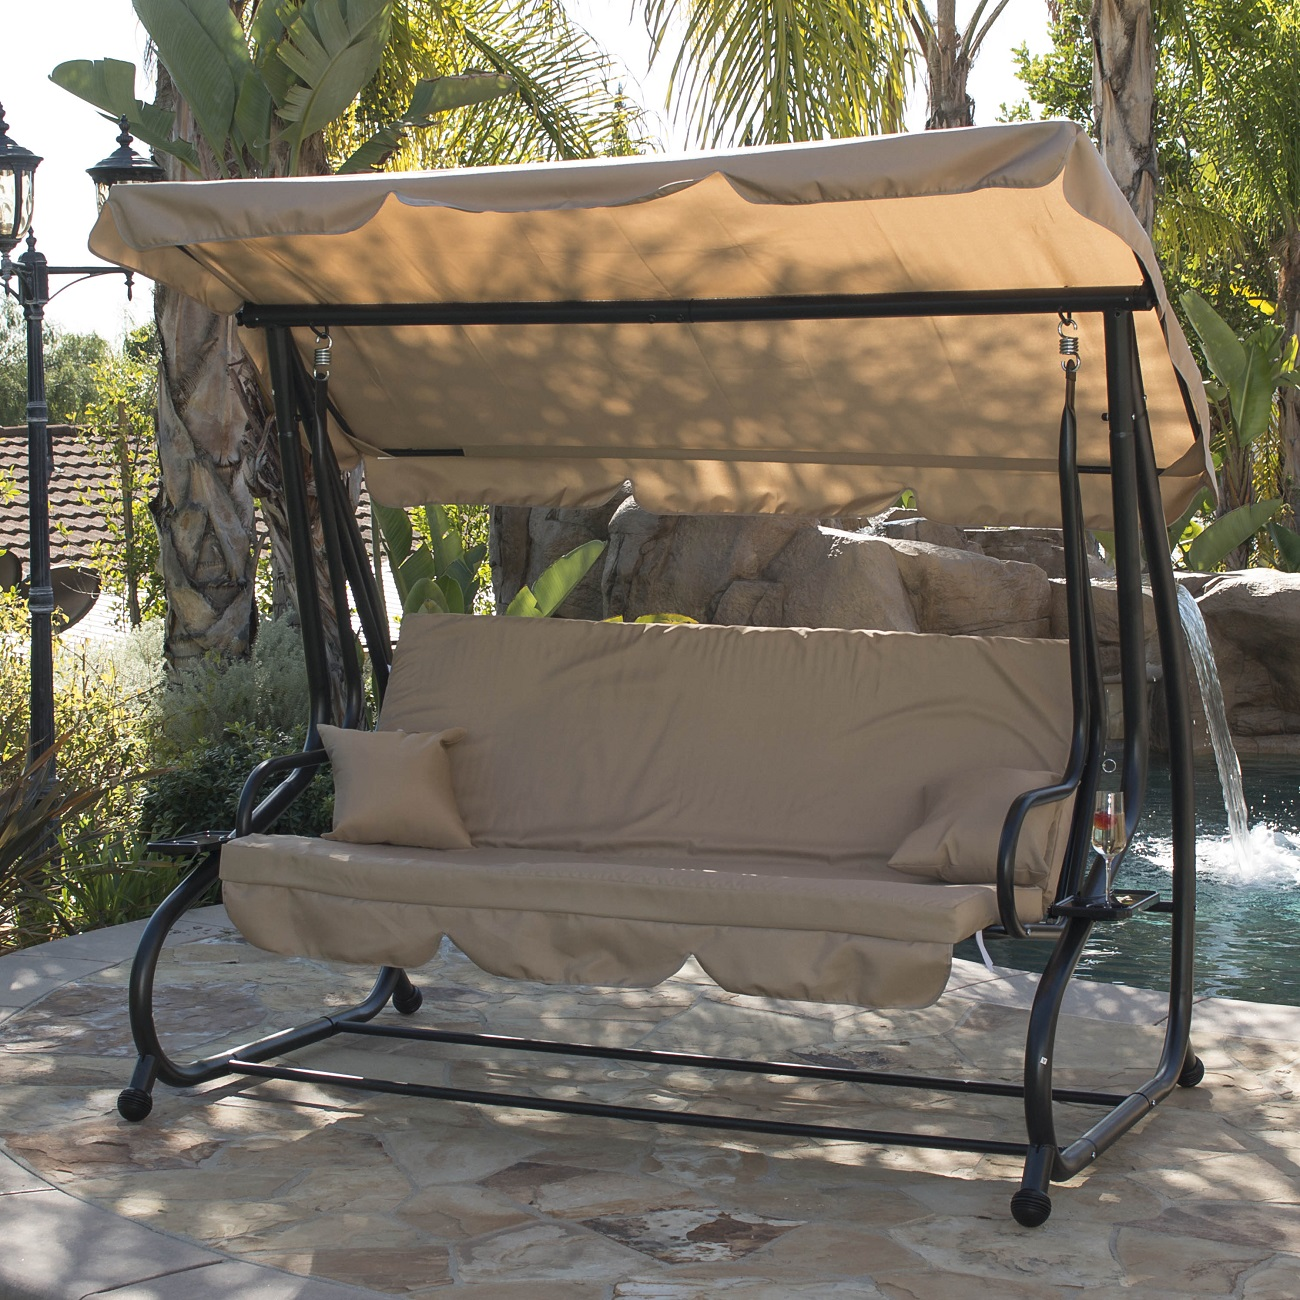 outdoor swing bed patio adjustable canopy deck porch seat chair w 2 pillow ebay. Black Bedroom Furniture Sets. Home Design Ideas